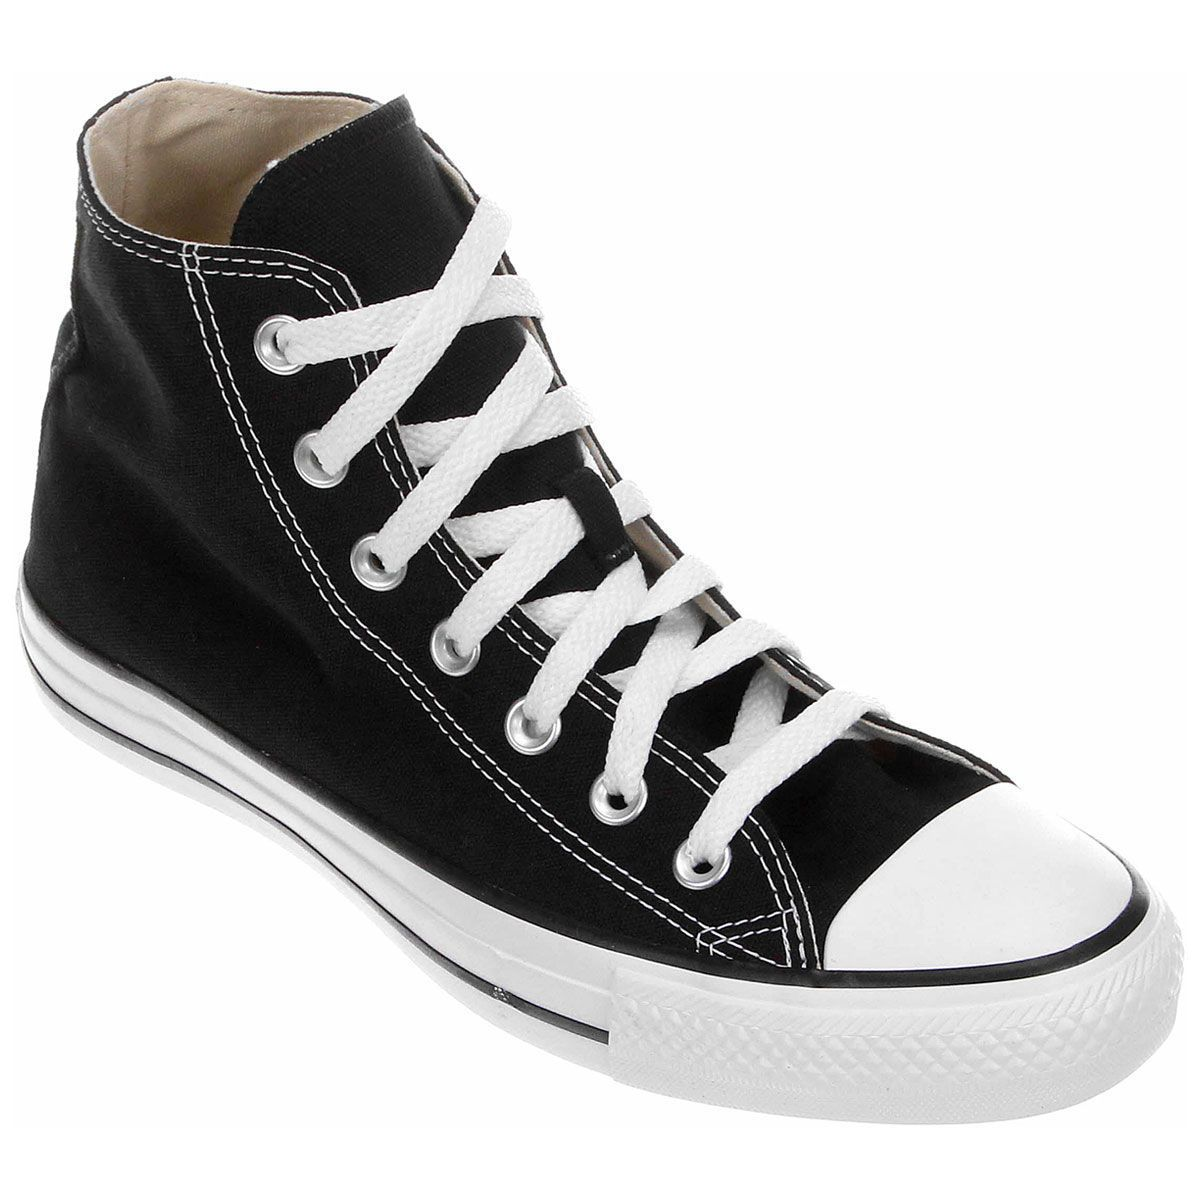 Tênis Cano Alto Converse All Star CT AS HI / Preto - Branco